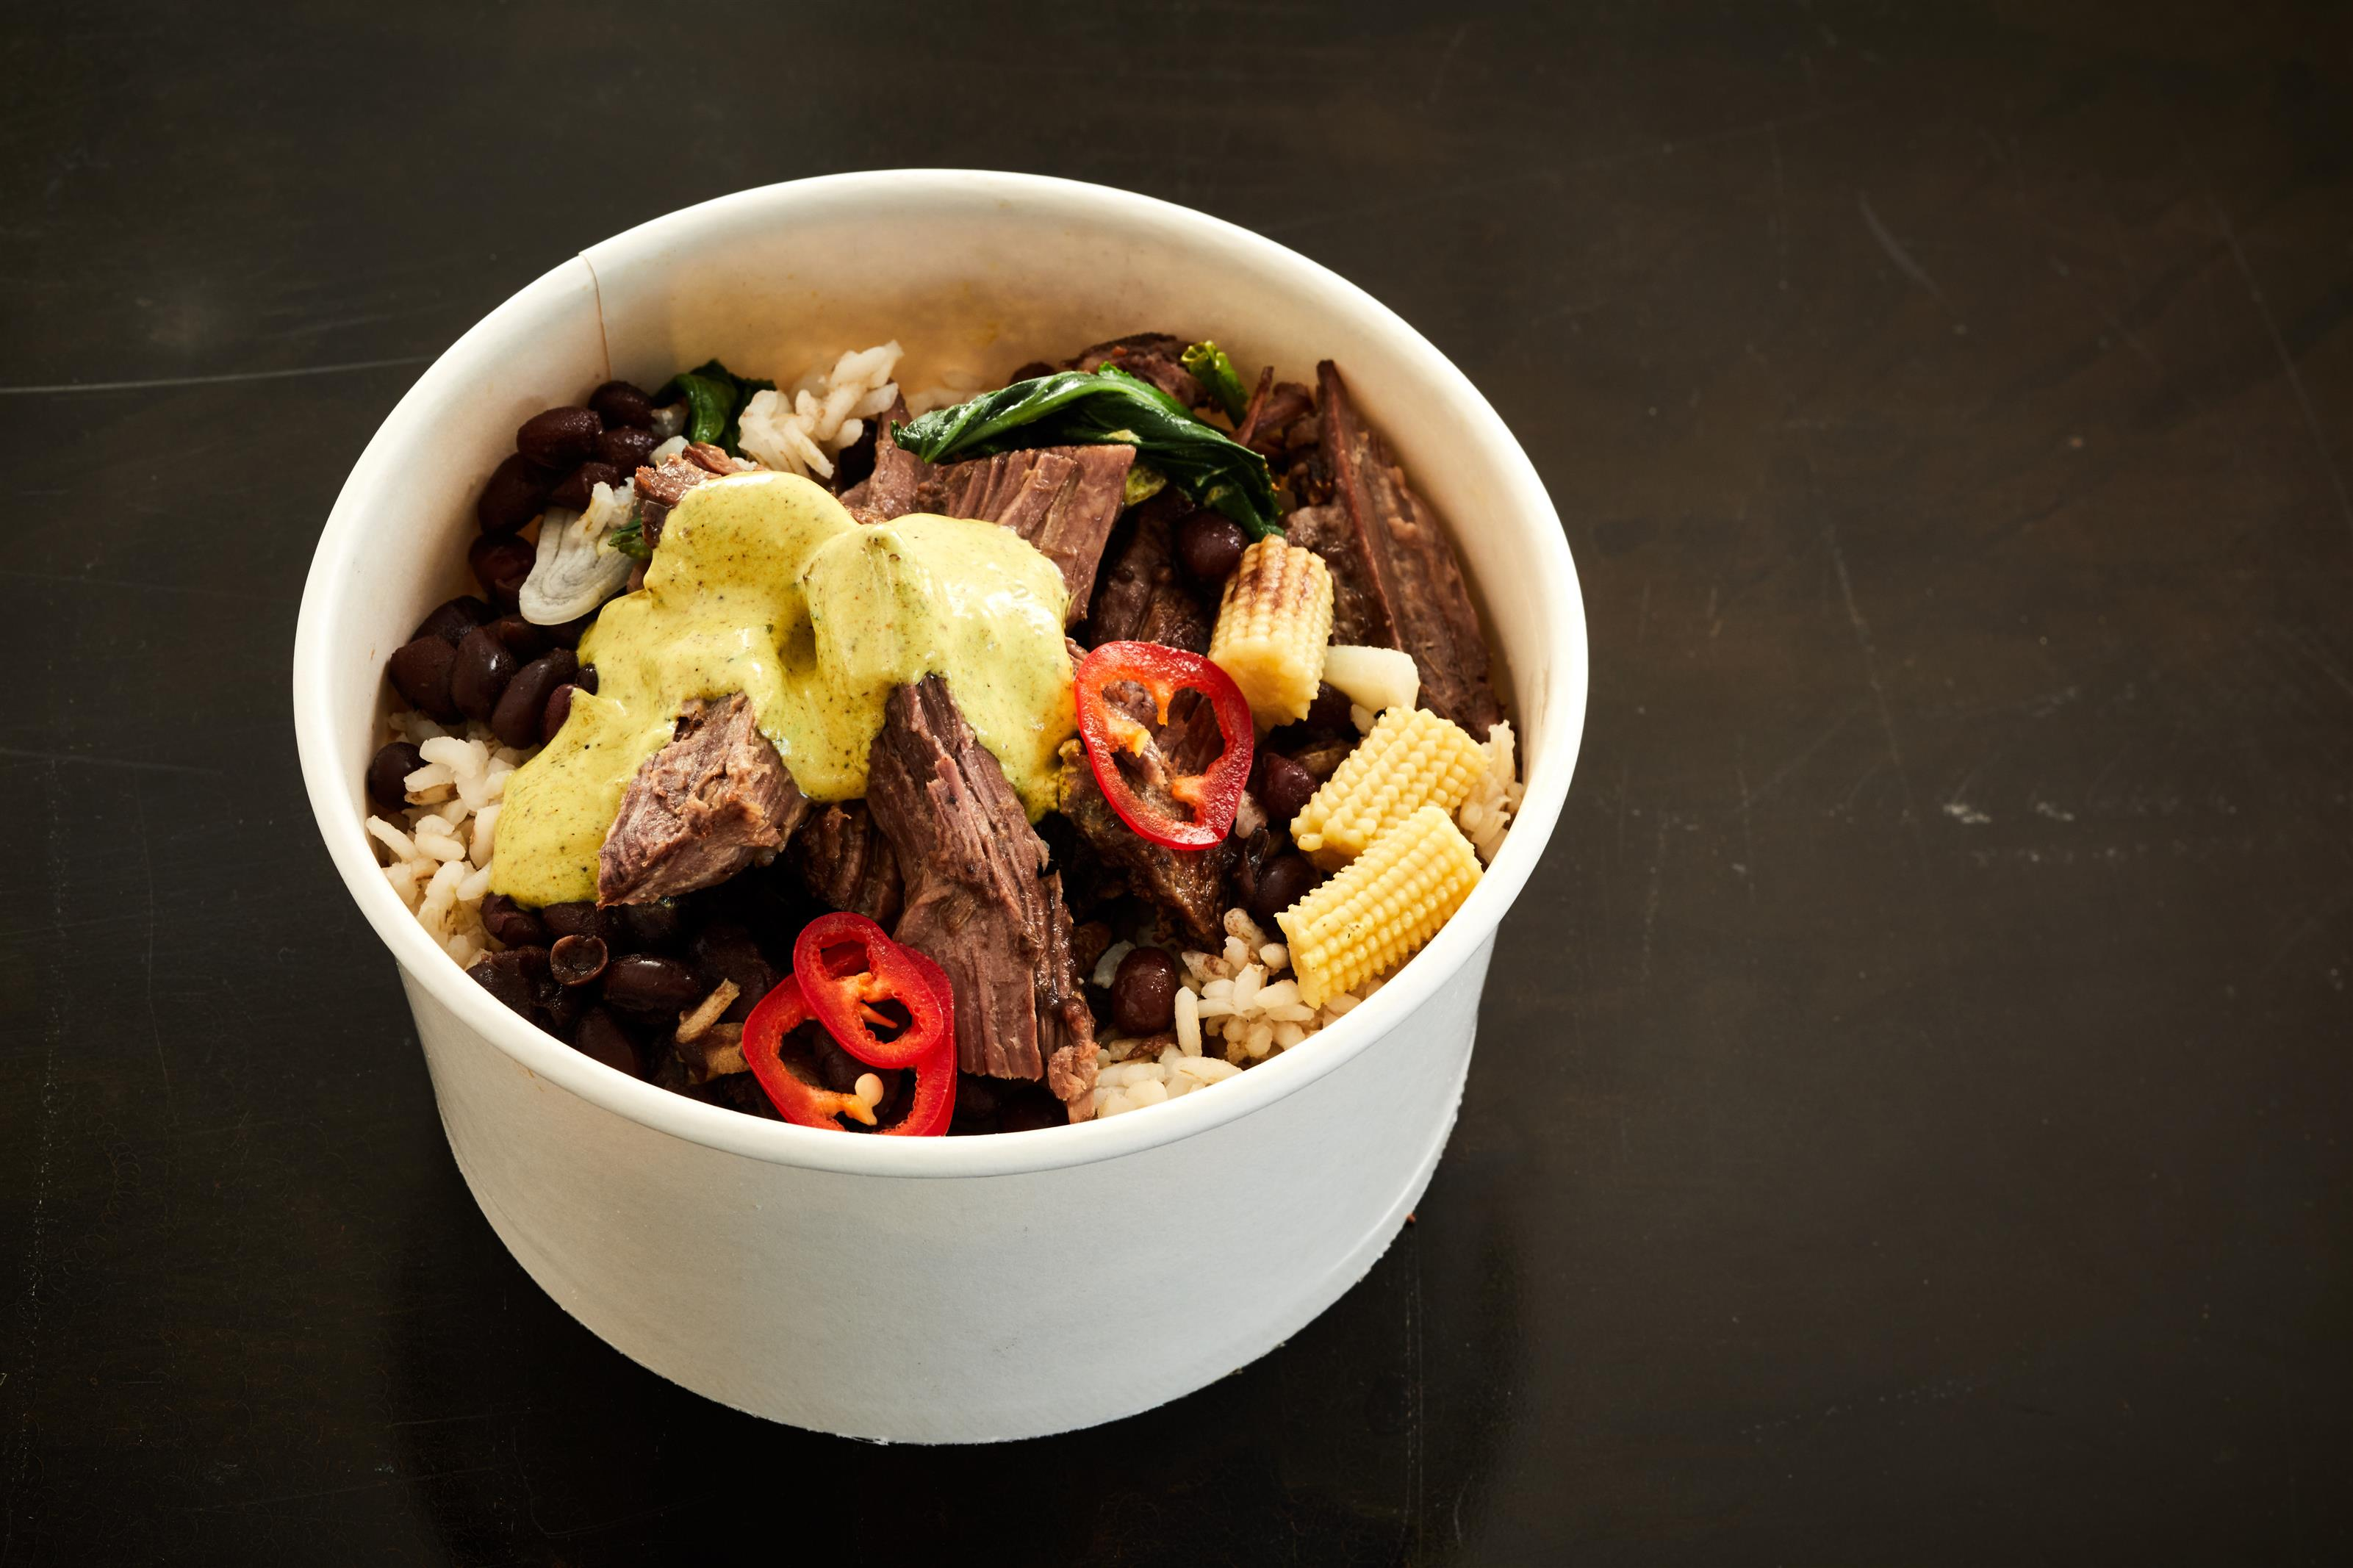 BRAISED BEEF bowl. Texas Brown Rice, spicy black beans, turmeric yogurt